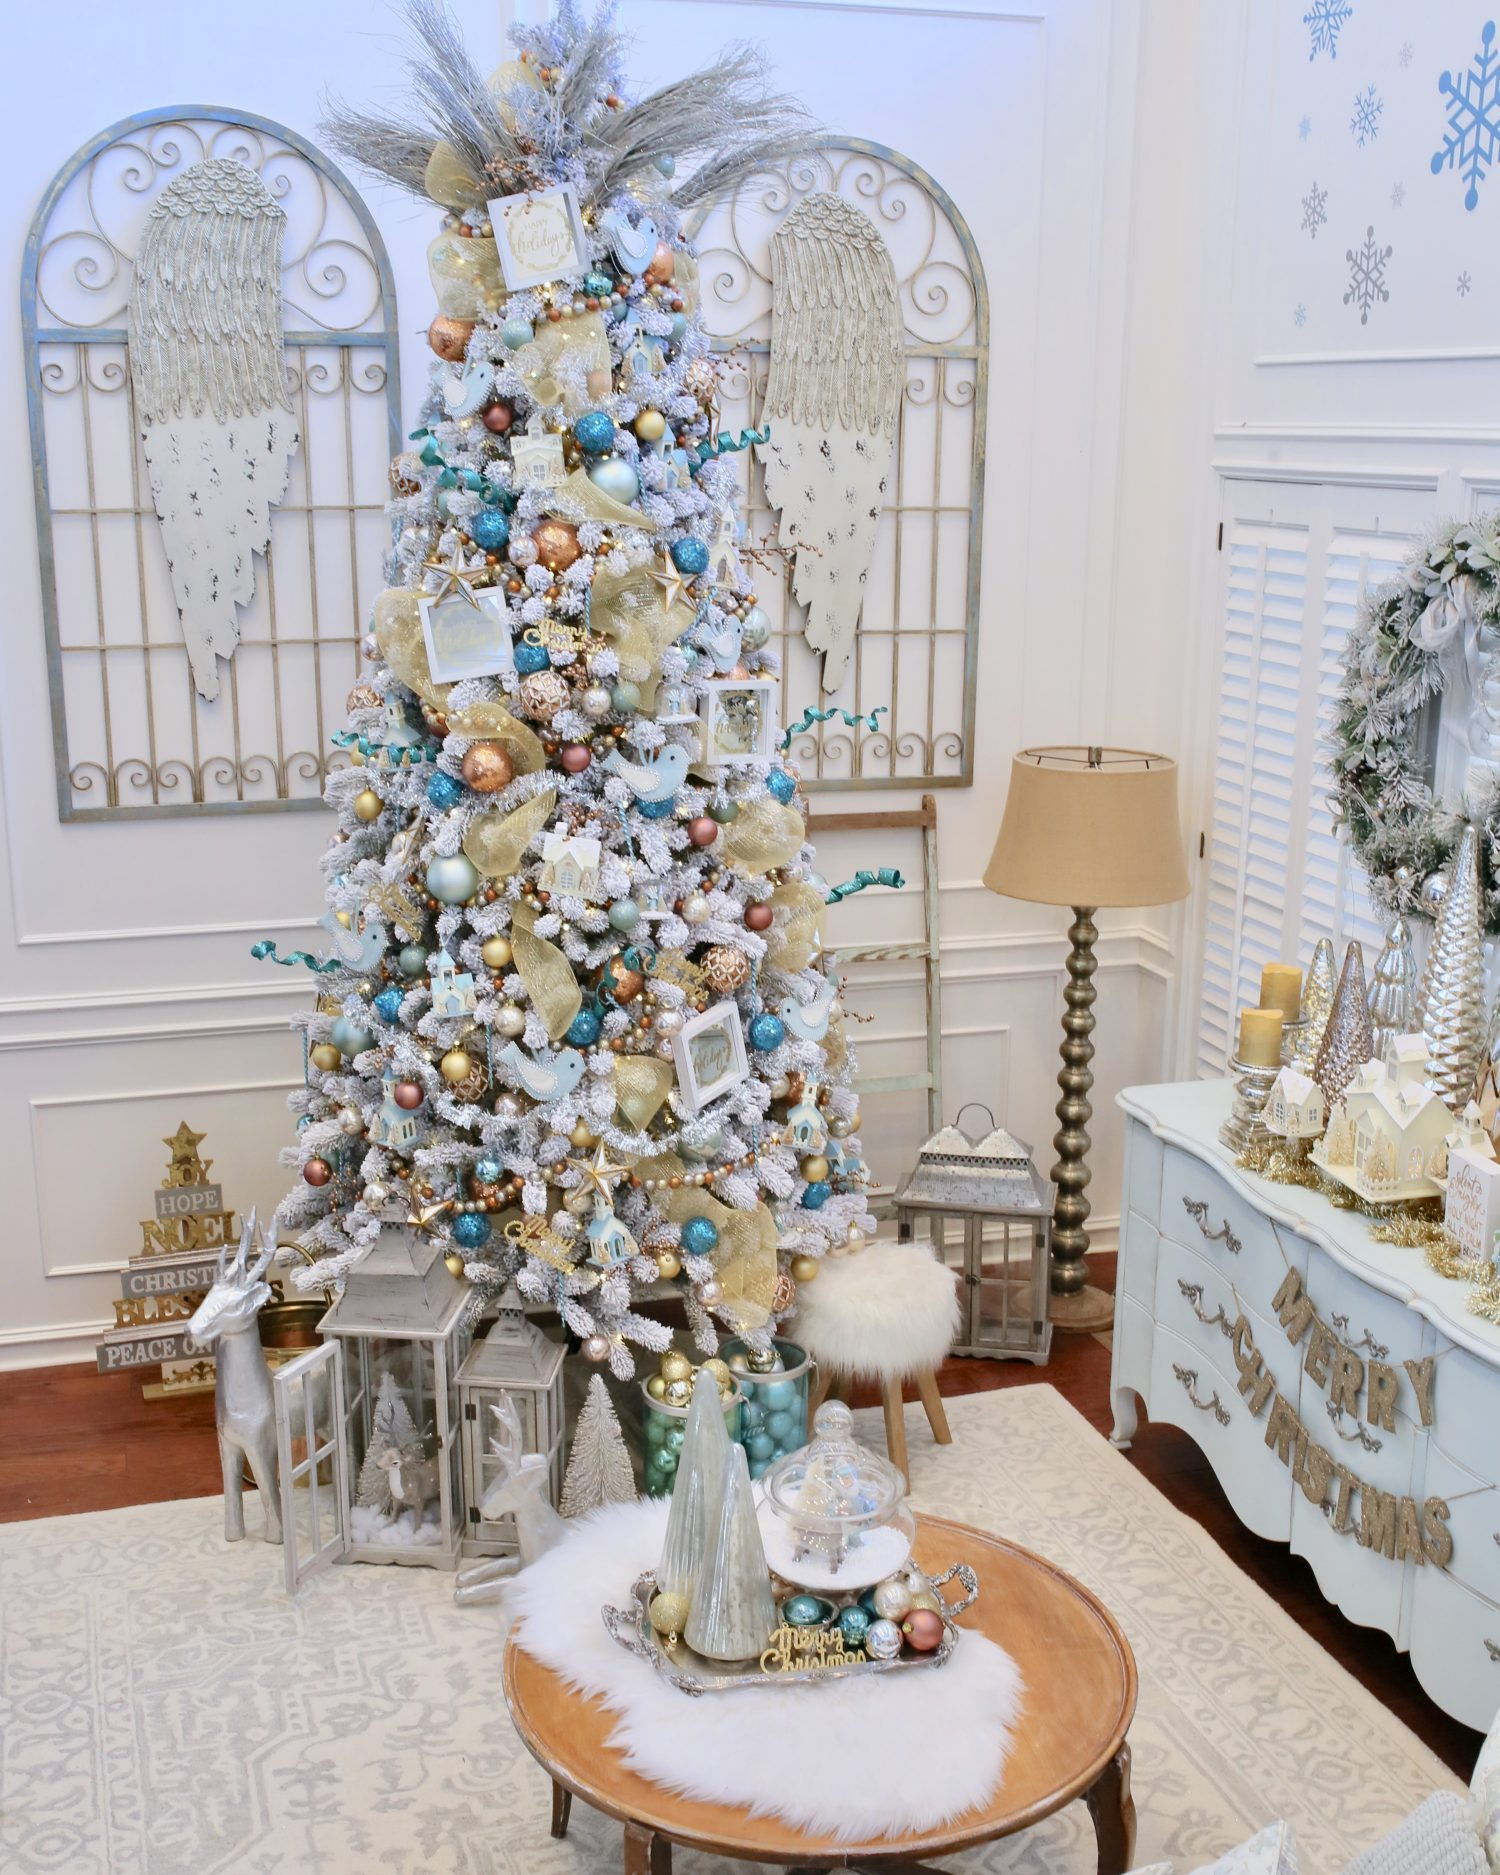 The 2018 Trends For Christmas Decorations: Christmas In July: Decor Trends Of 2018